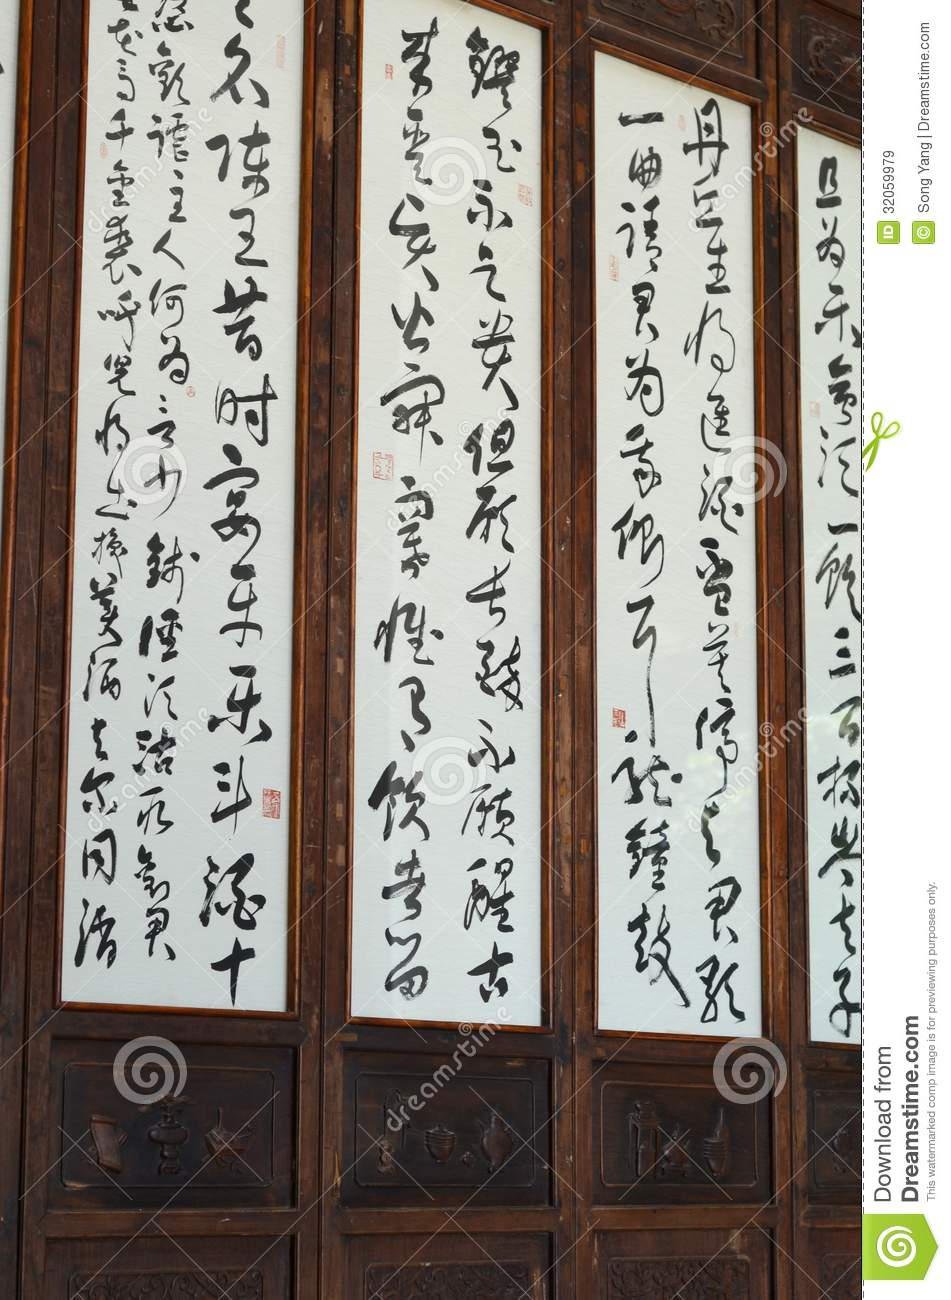 Chinese calligraphy royalty free stock images image Ancient china calligraphy